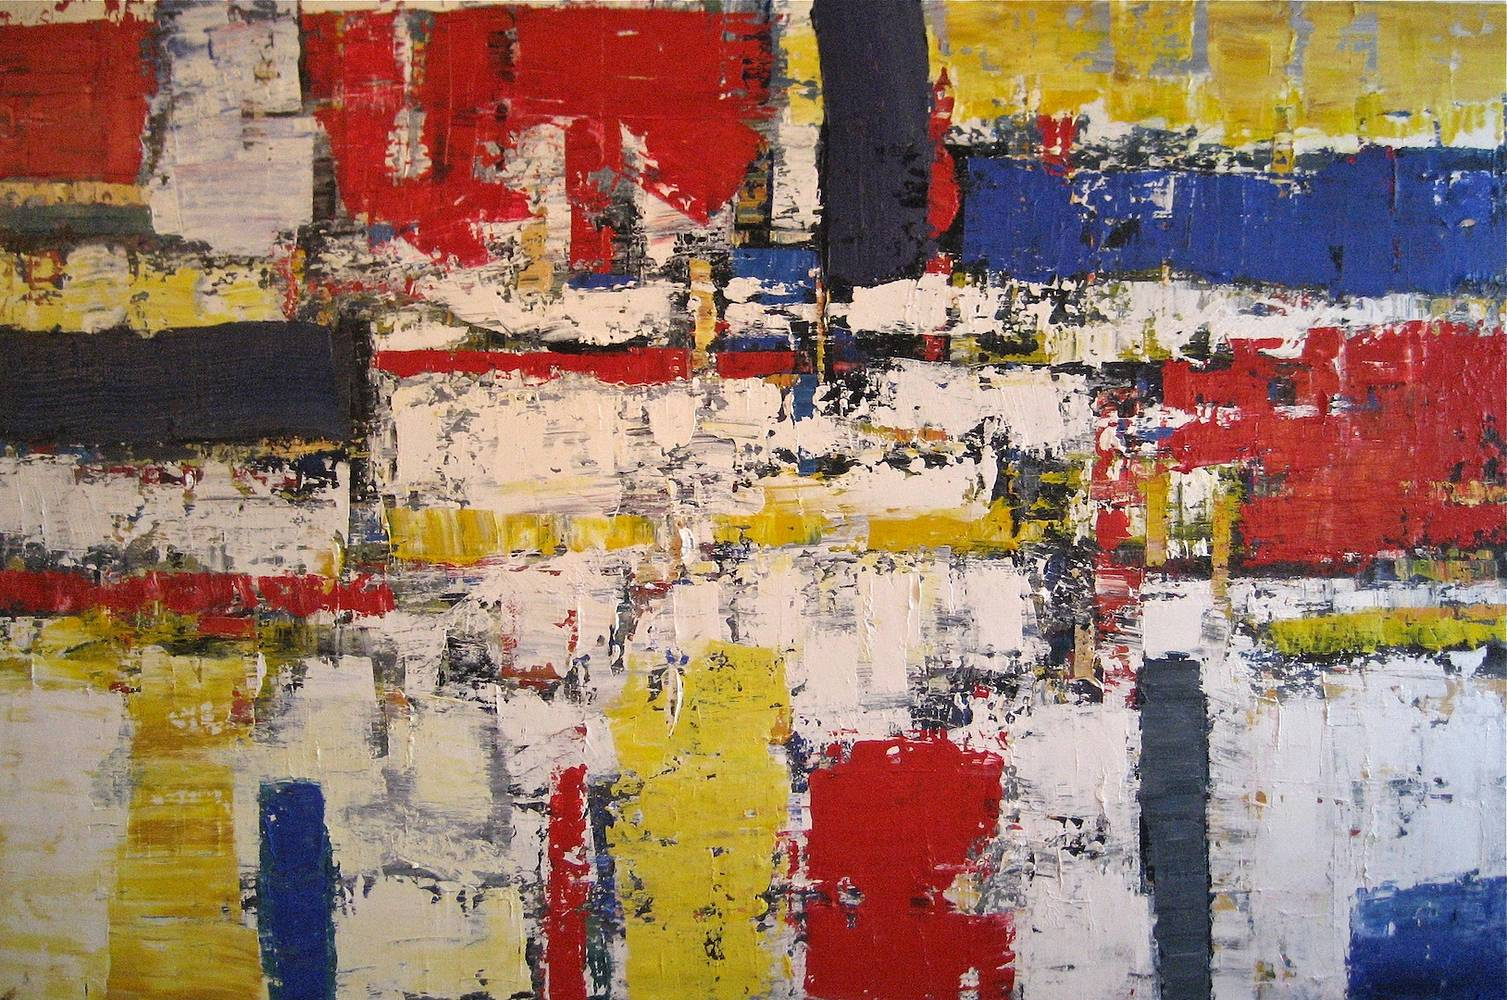 Acrylic painting Composition with Red, Yellow and Blue  by David Tycho